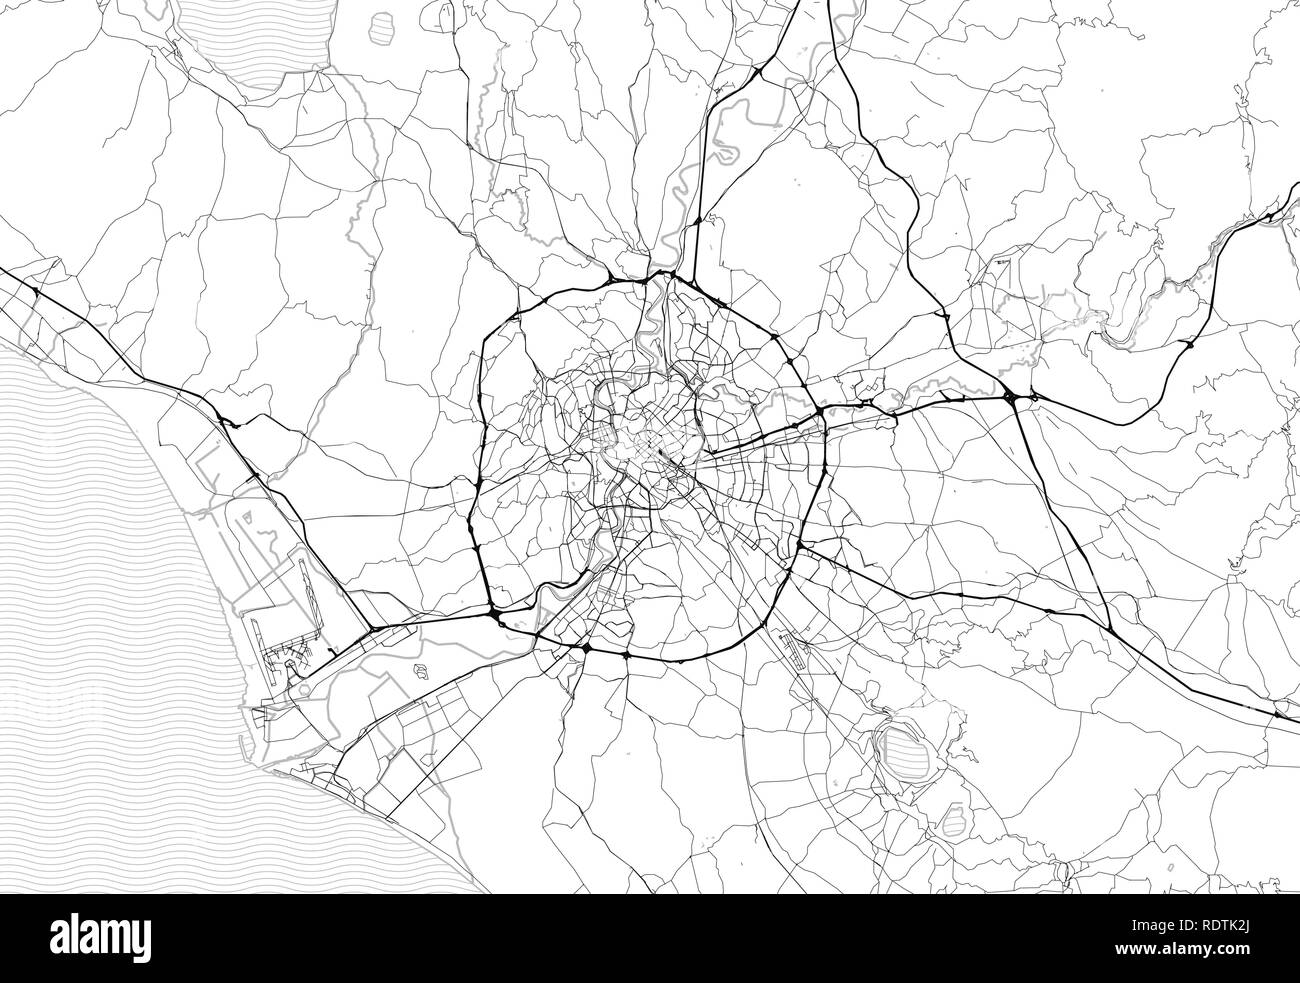 Area map of Rome, Italy. This artmap of Rome contains ... Map Of Rome Italy Area on map of rimini italy, map of perugia italy, map of molise italy, map of tropea italy, map of naples italy, map of treviso italy, map of palermo italy, map of milan italy, map of venice italy, map of viterbo italy, map of verona italy, map of salerno italy, map of tuscany italy, map of cremona italy, map of salina italy, map of pistoia italy, map of sardinia italy, map of la maddalena italy, map of chianti italy, map of alghero italy,